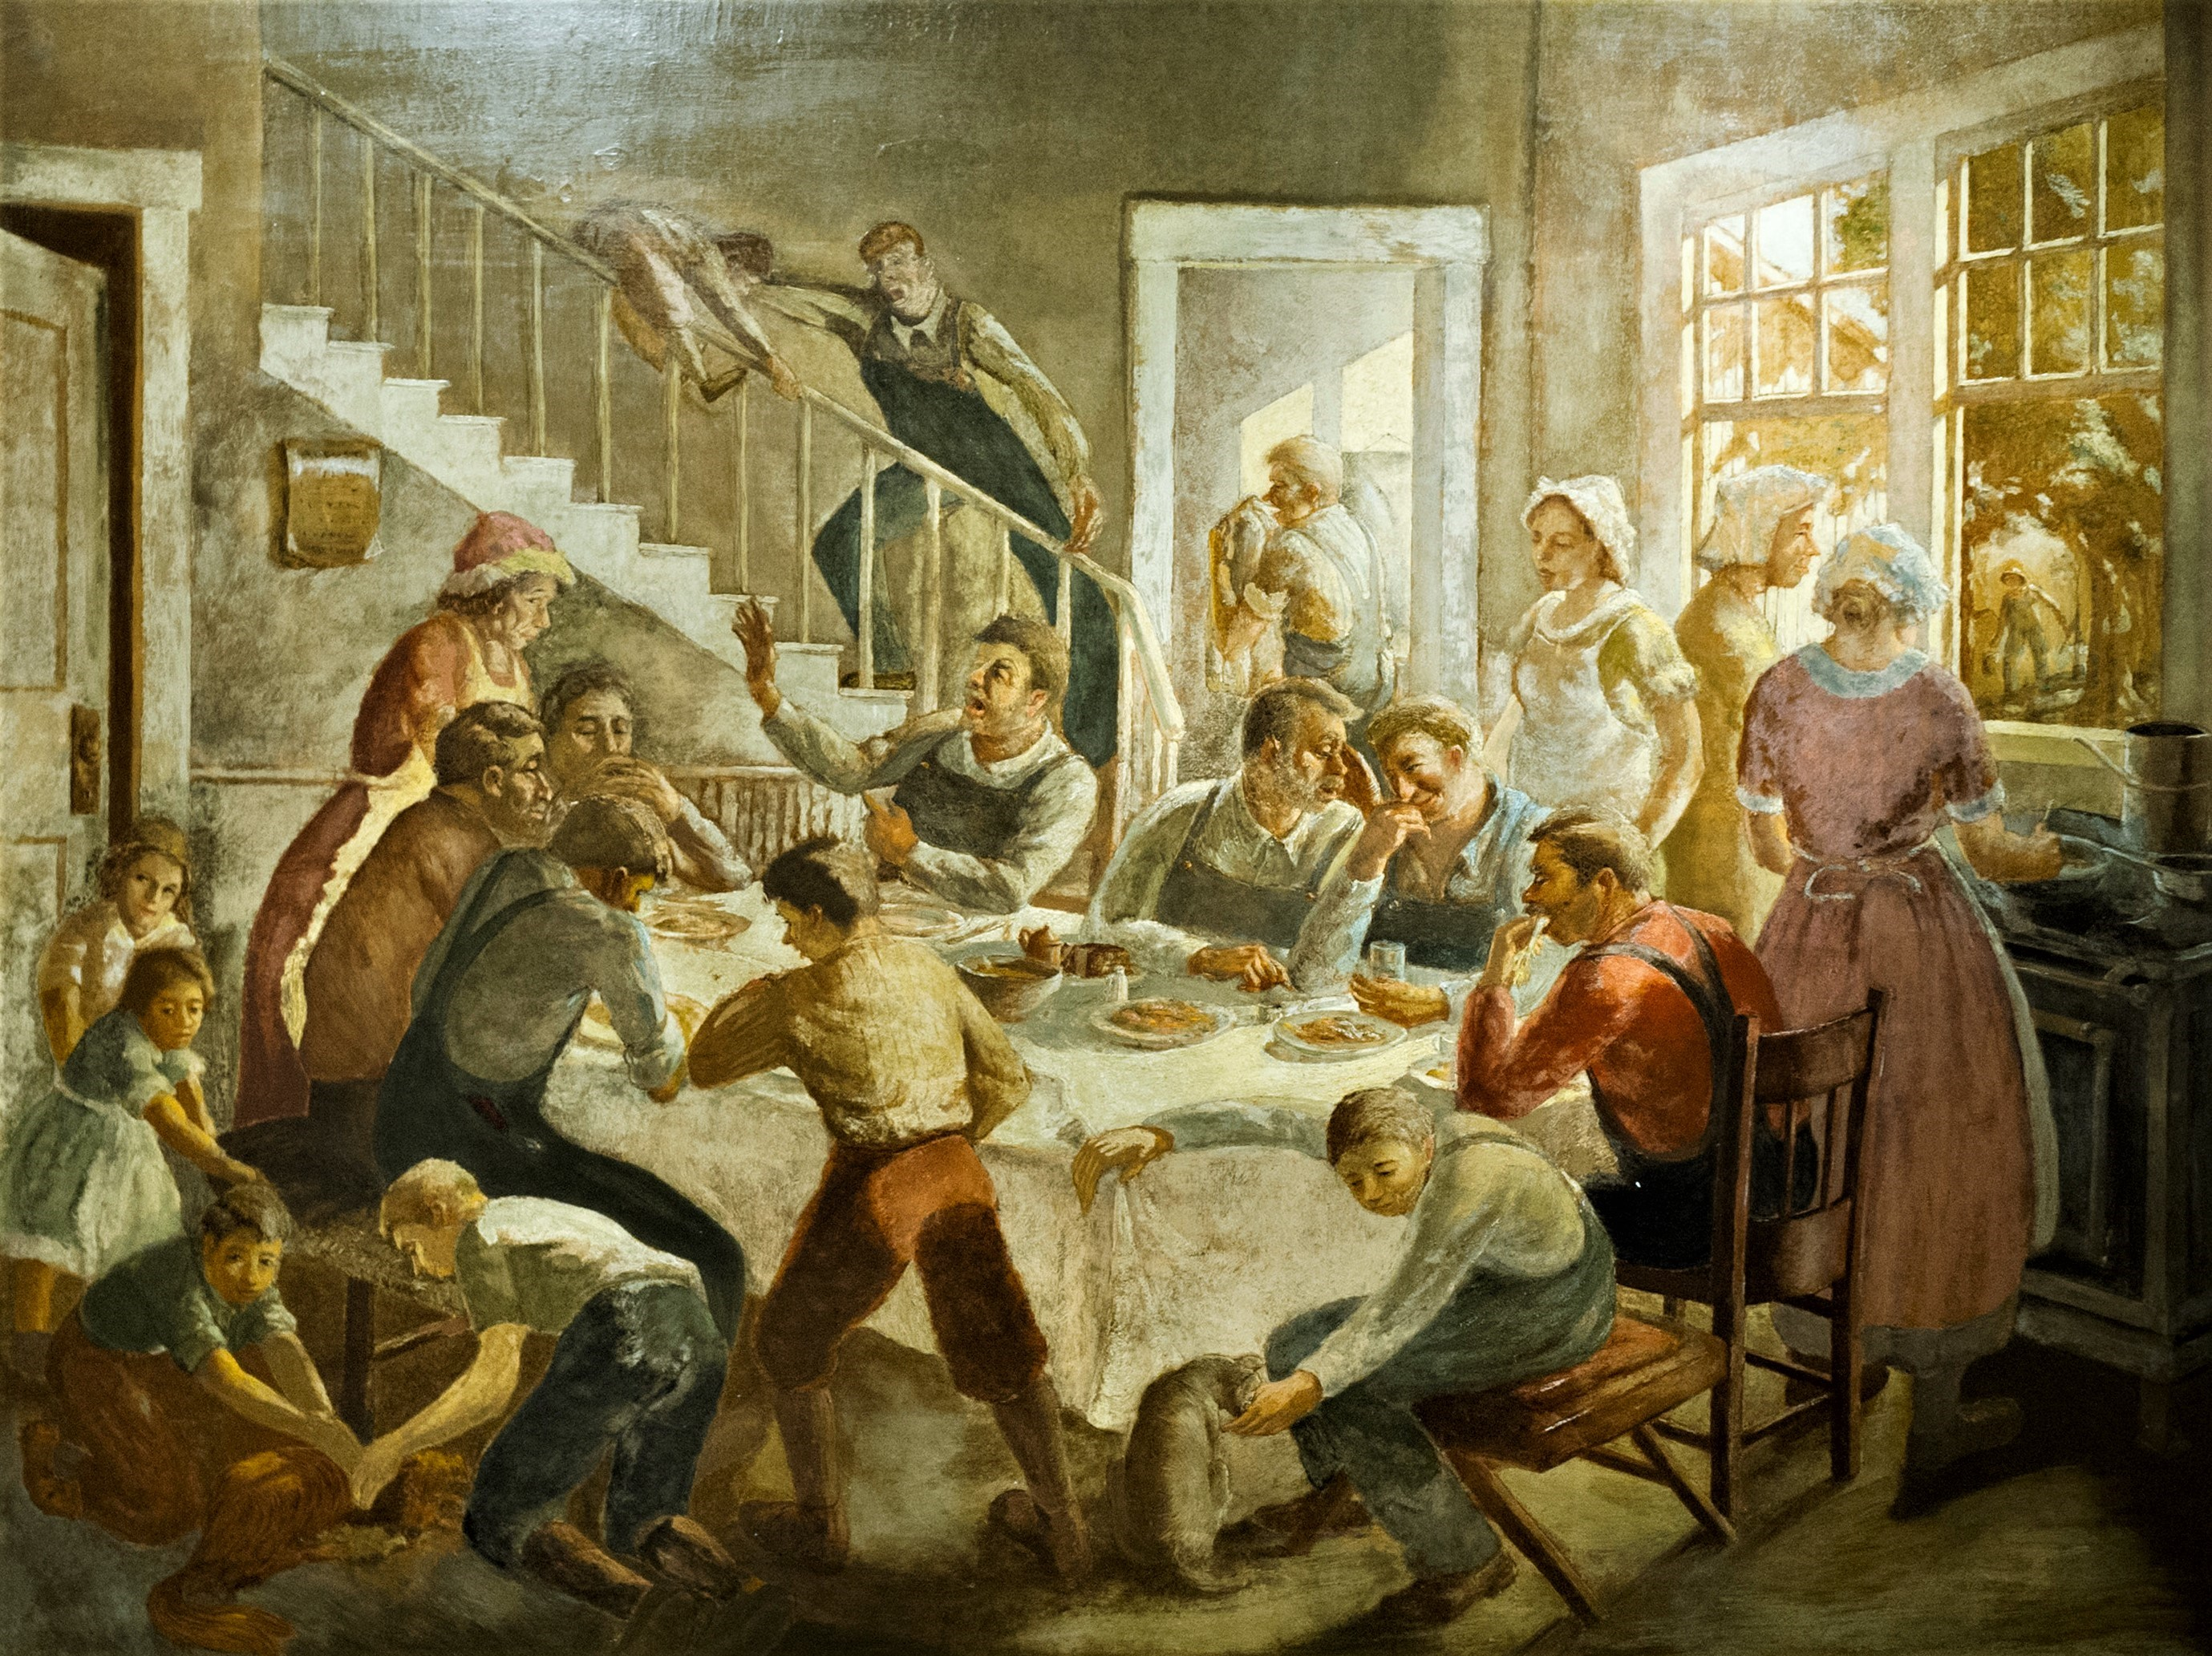 Harry Davis painting of a dinner feast